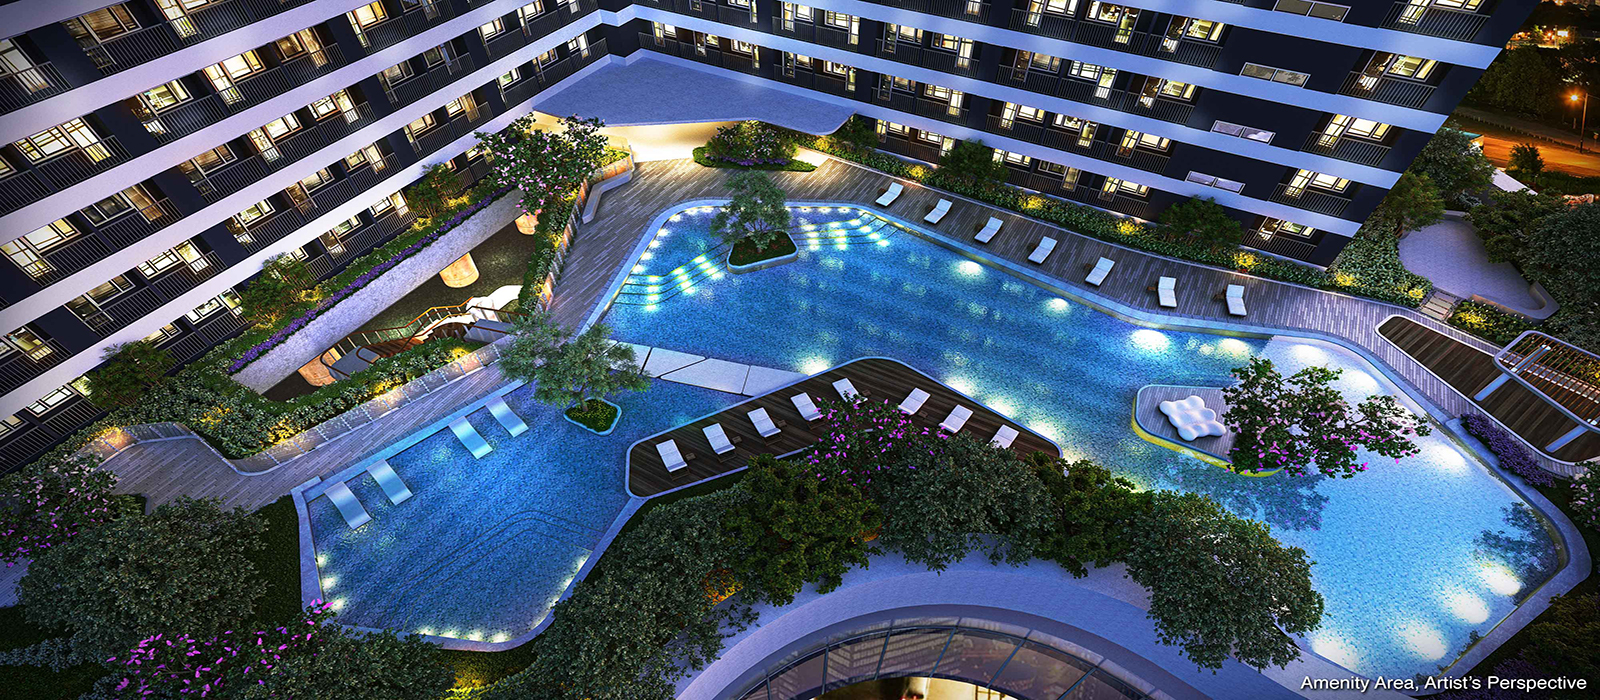 AIR RESIDENCES PROPERTIES IN THE PHILIPPINES